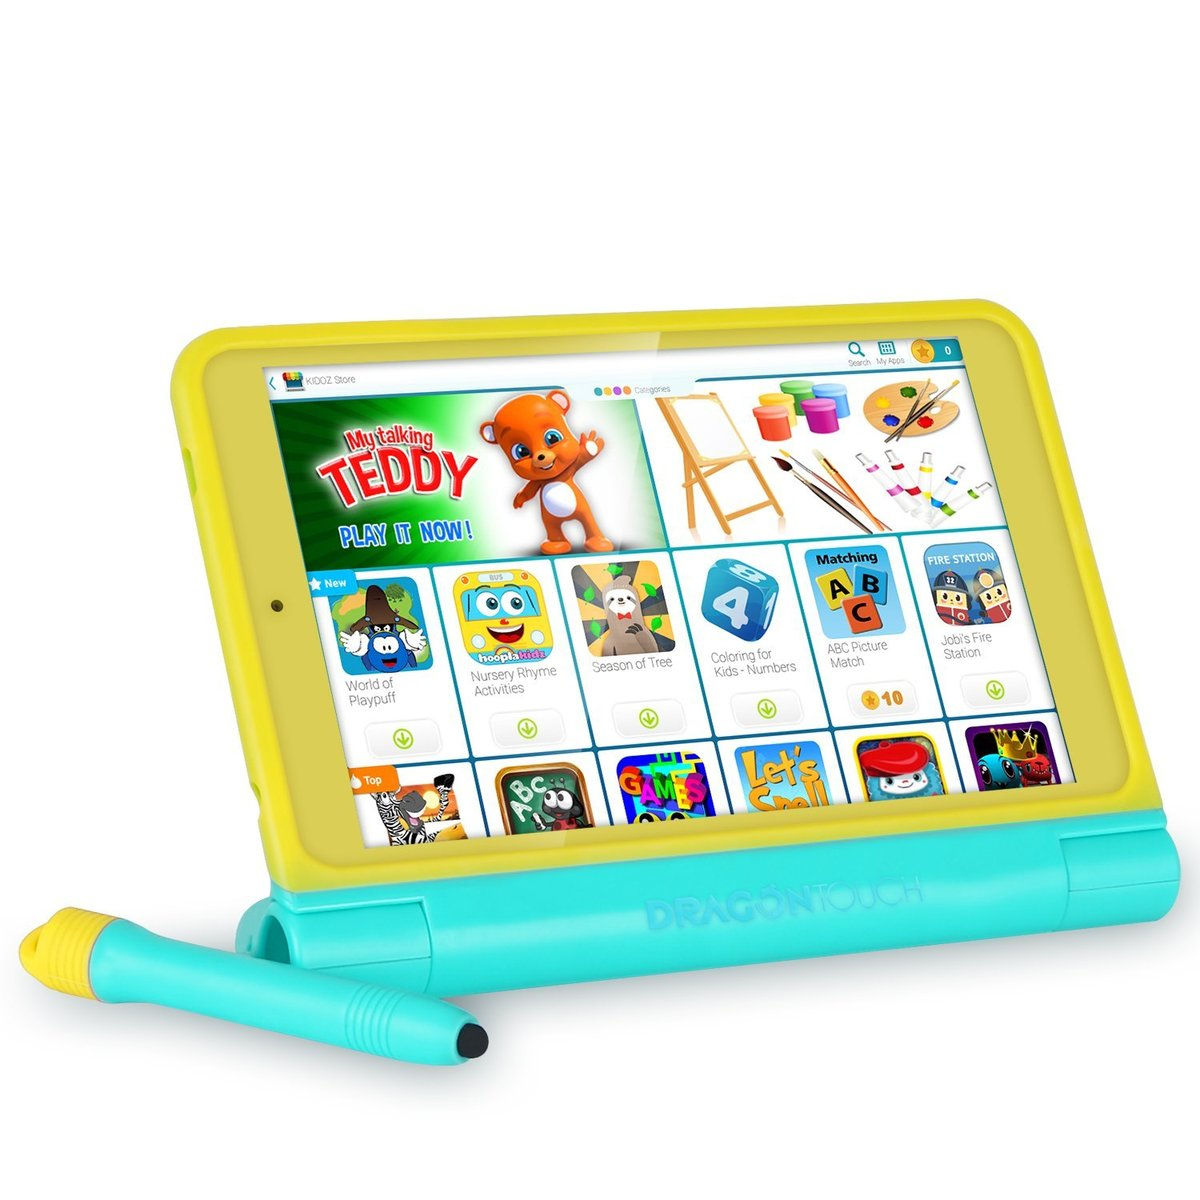 8 inch Kids Quad Core Tablet Kidoz Pre-Installed 2GB RAM 16GB ROM 1280*800 IPS Display Android 6.0 Marshmallow Android Tablet 8 inch kids quad core tablet kidoz pre installed 2gb ram 16gb rom 1280 800 ips display android 6 0 marshmallow android tablet